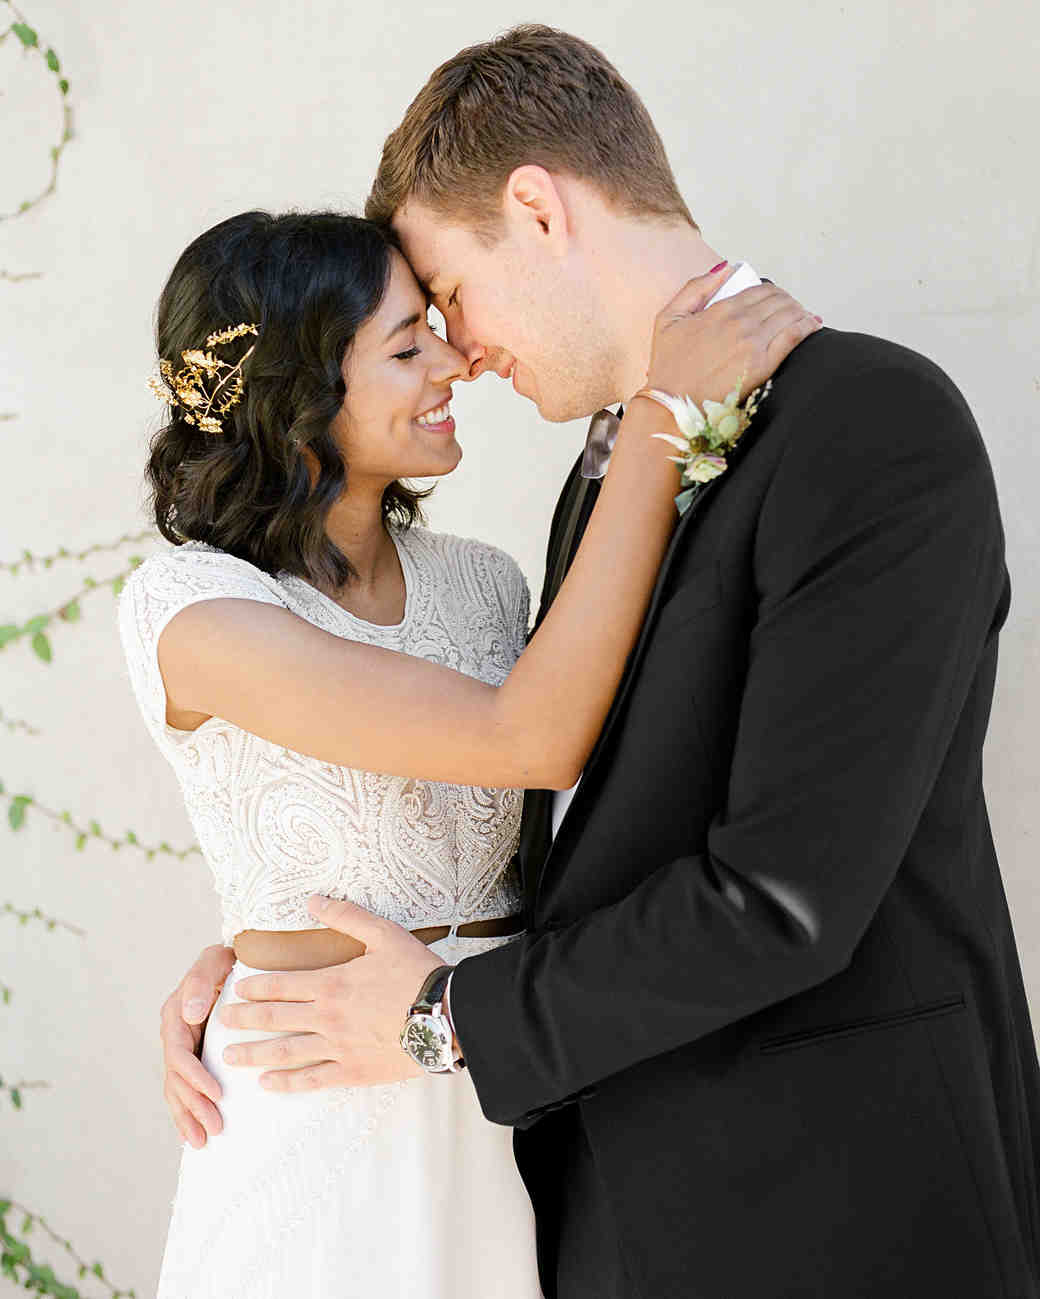 natasha nick wedding california couple embrace